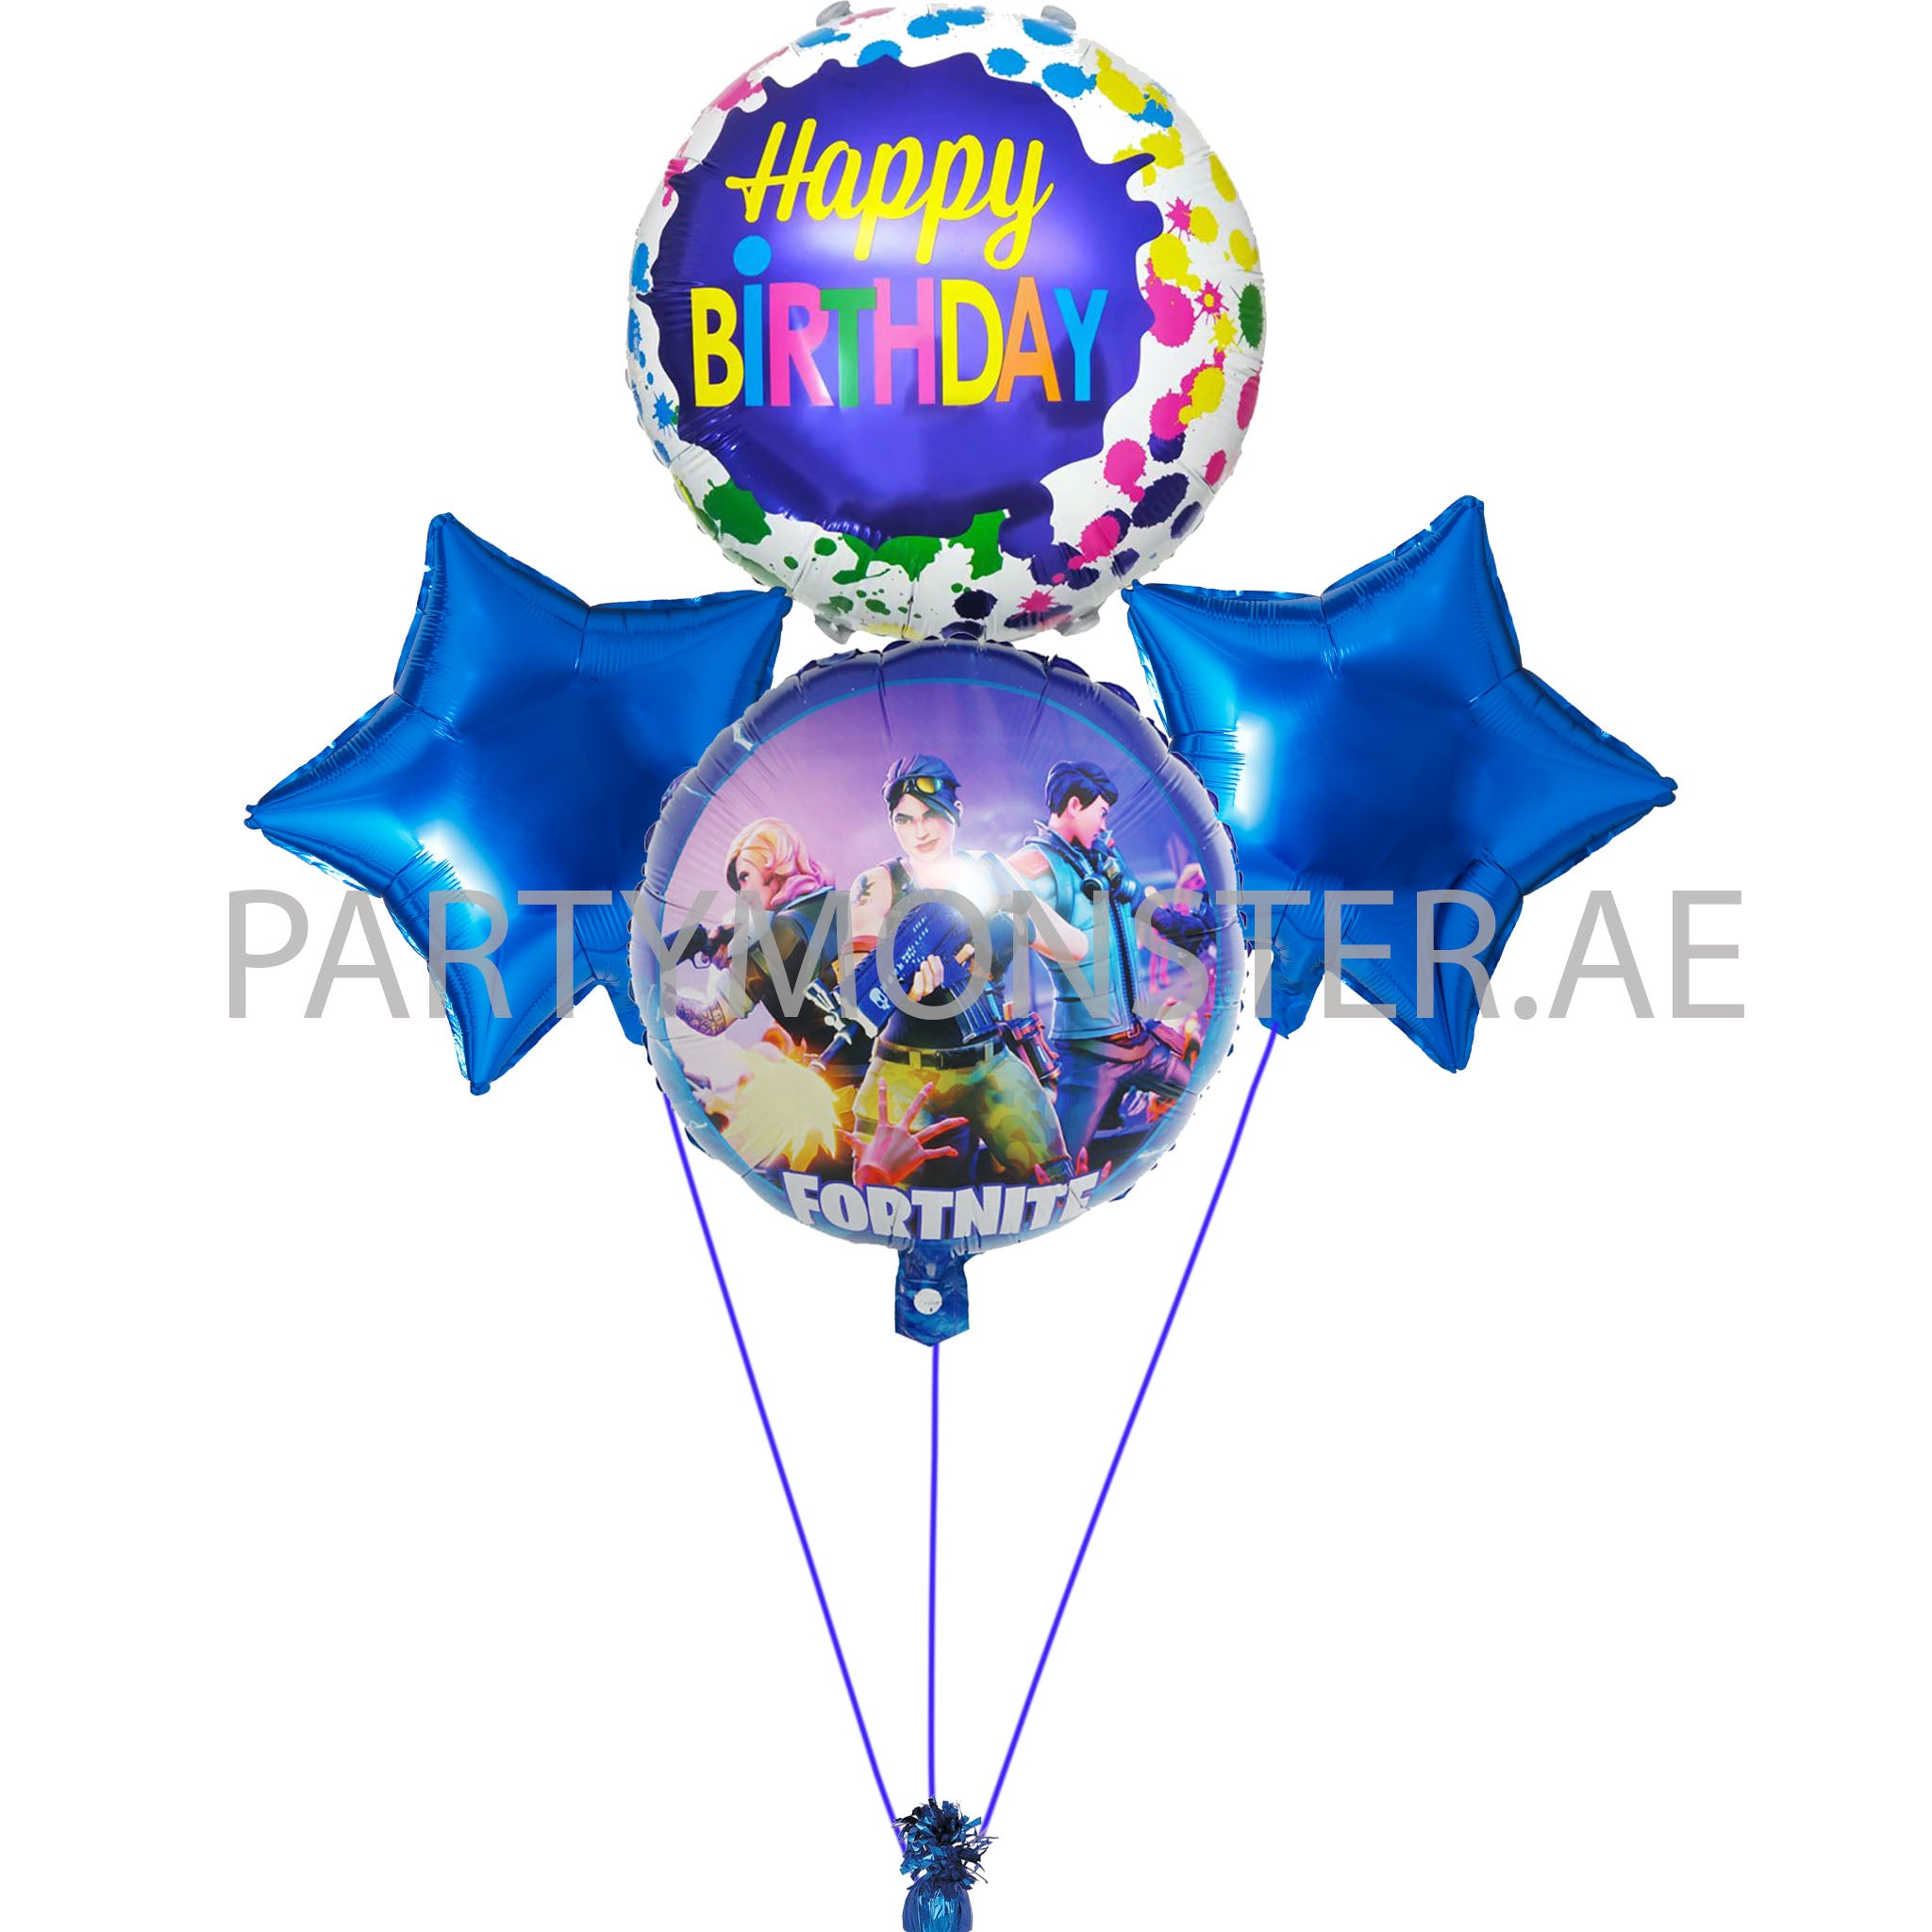 Fortnite birthday balloons bouquet - PartyMonster.ae